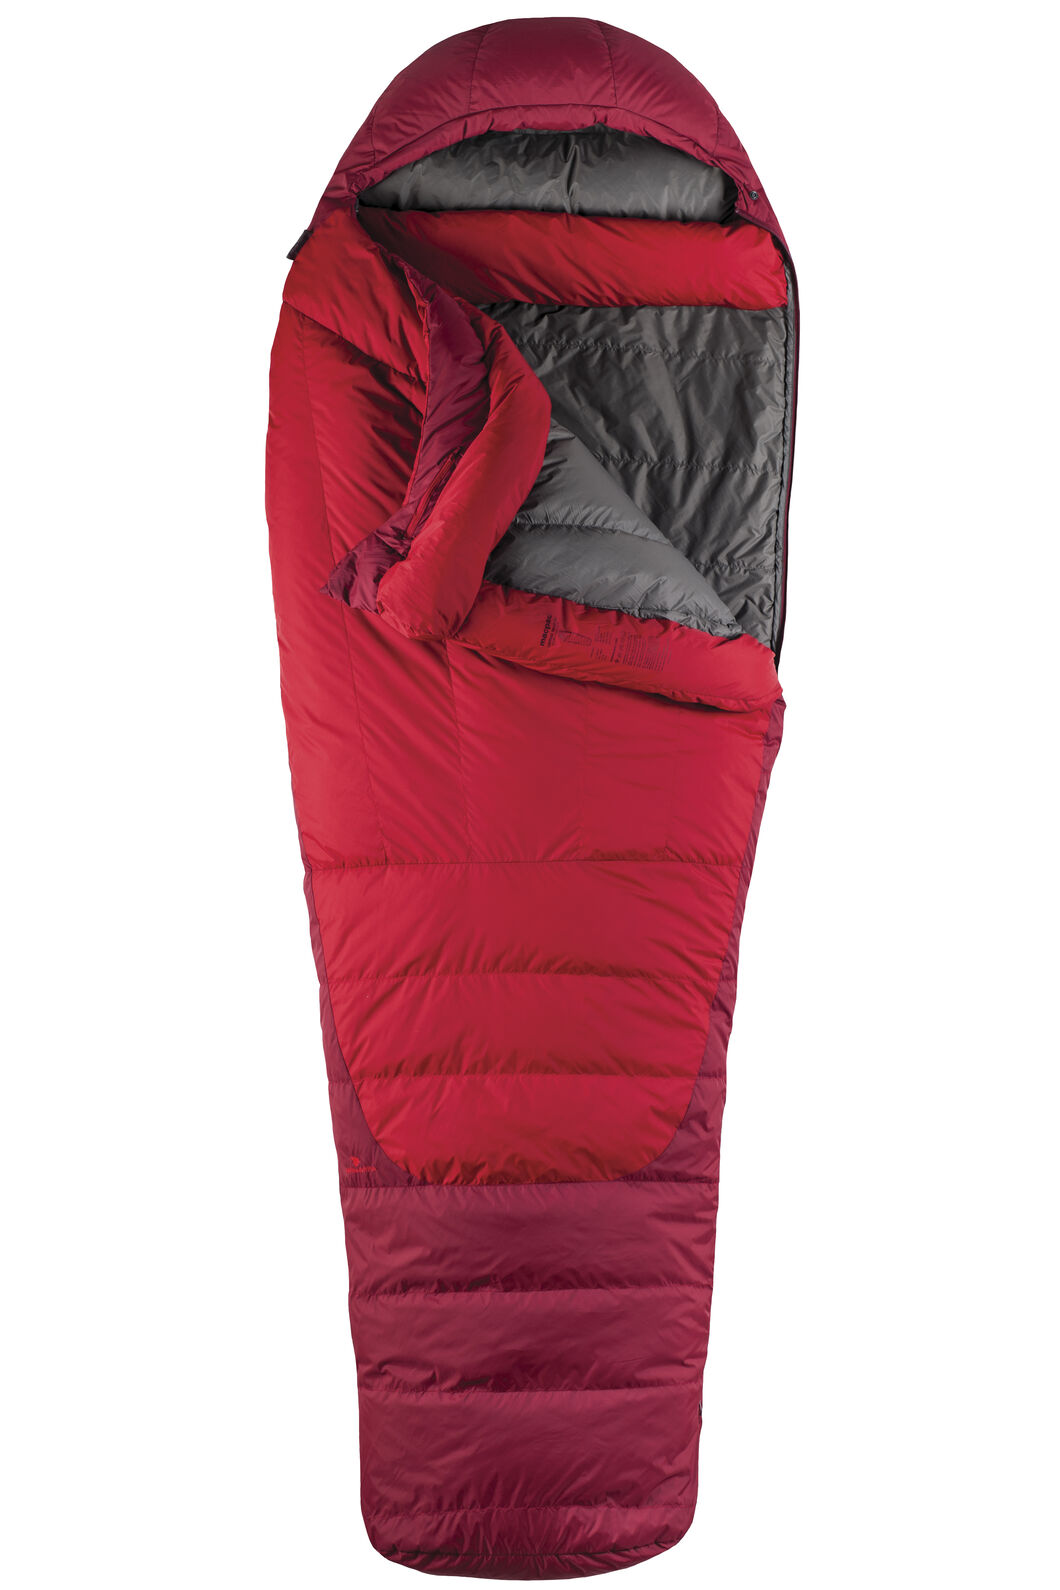 Macpac Latitude XP Goose Down 500 Sleeping Bag - Women's, Chilli, hi-res